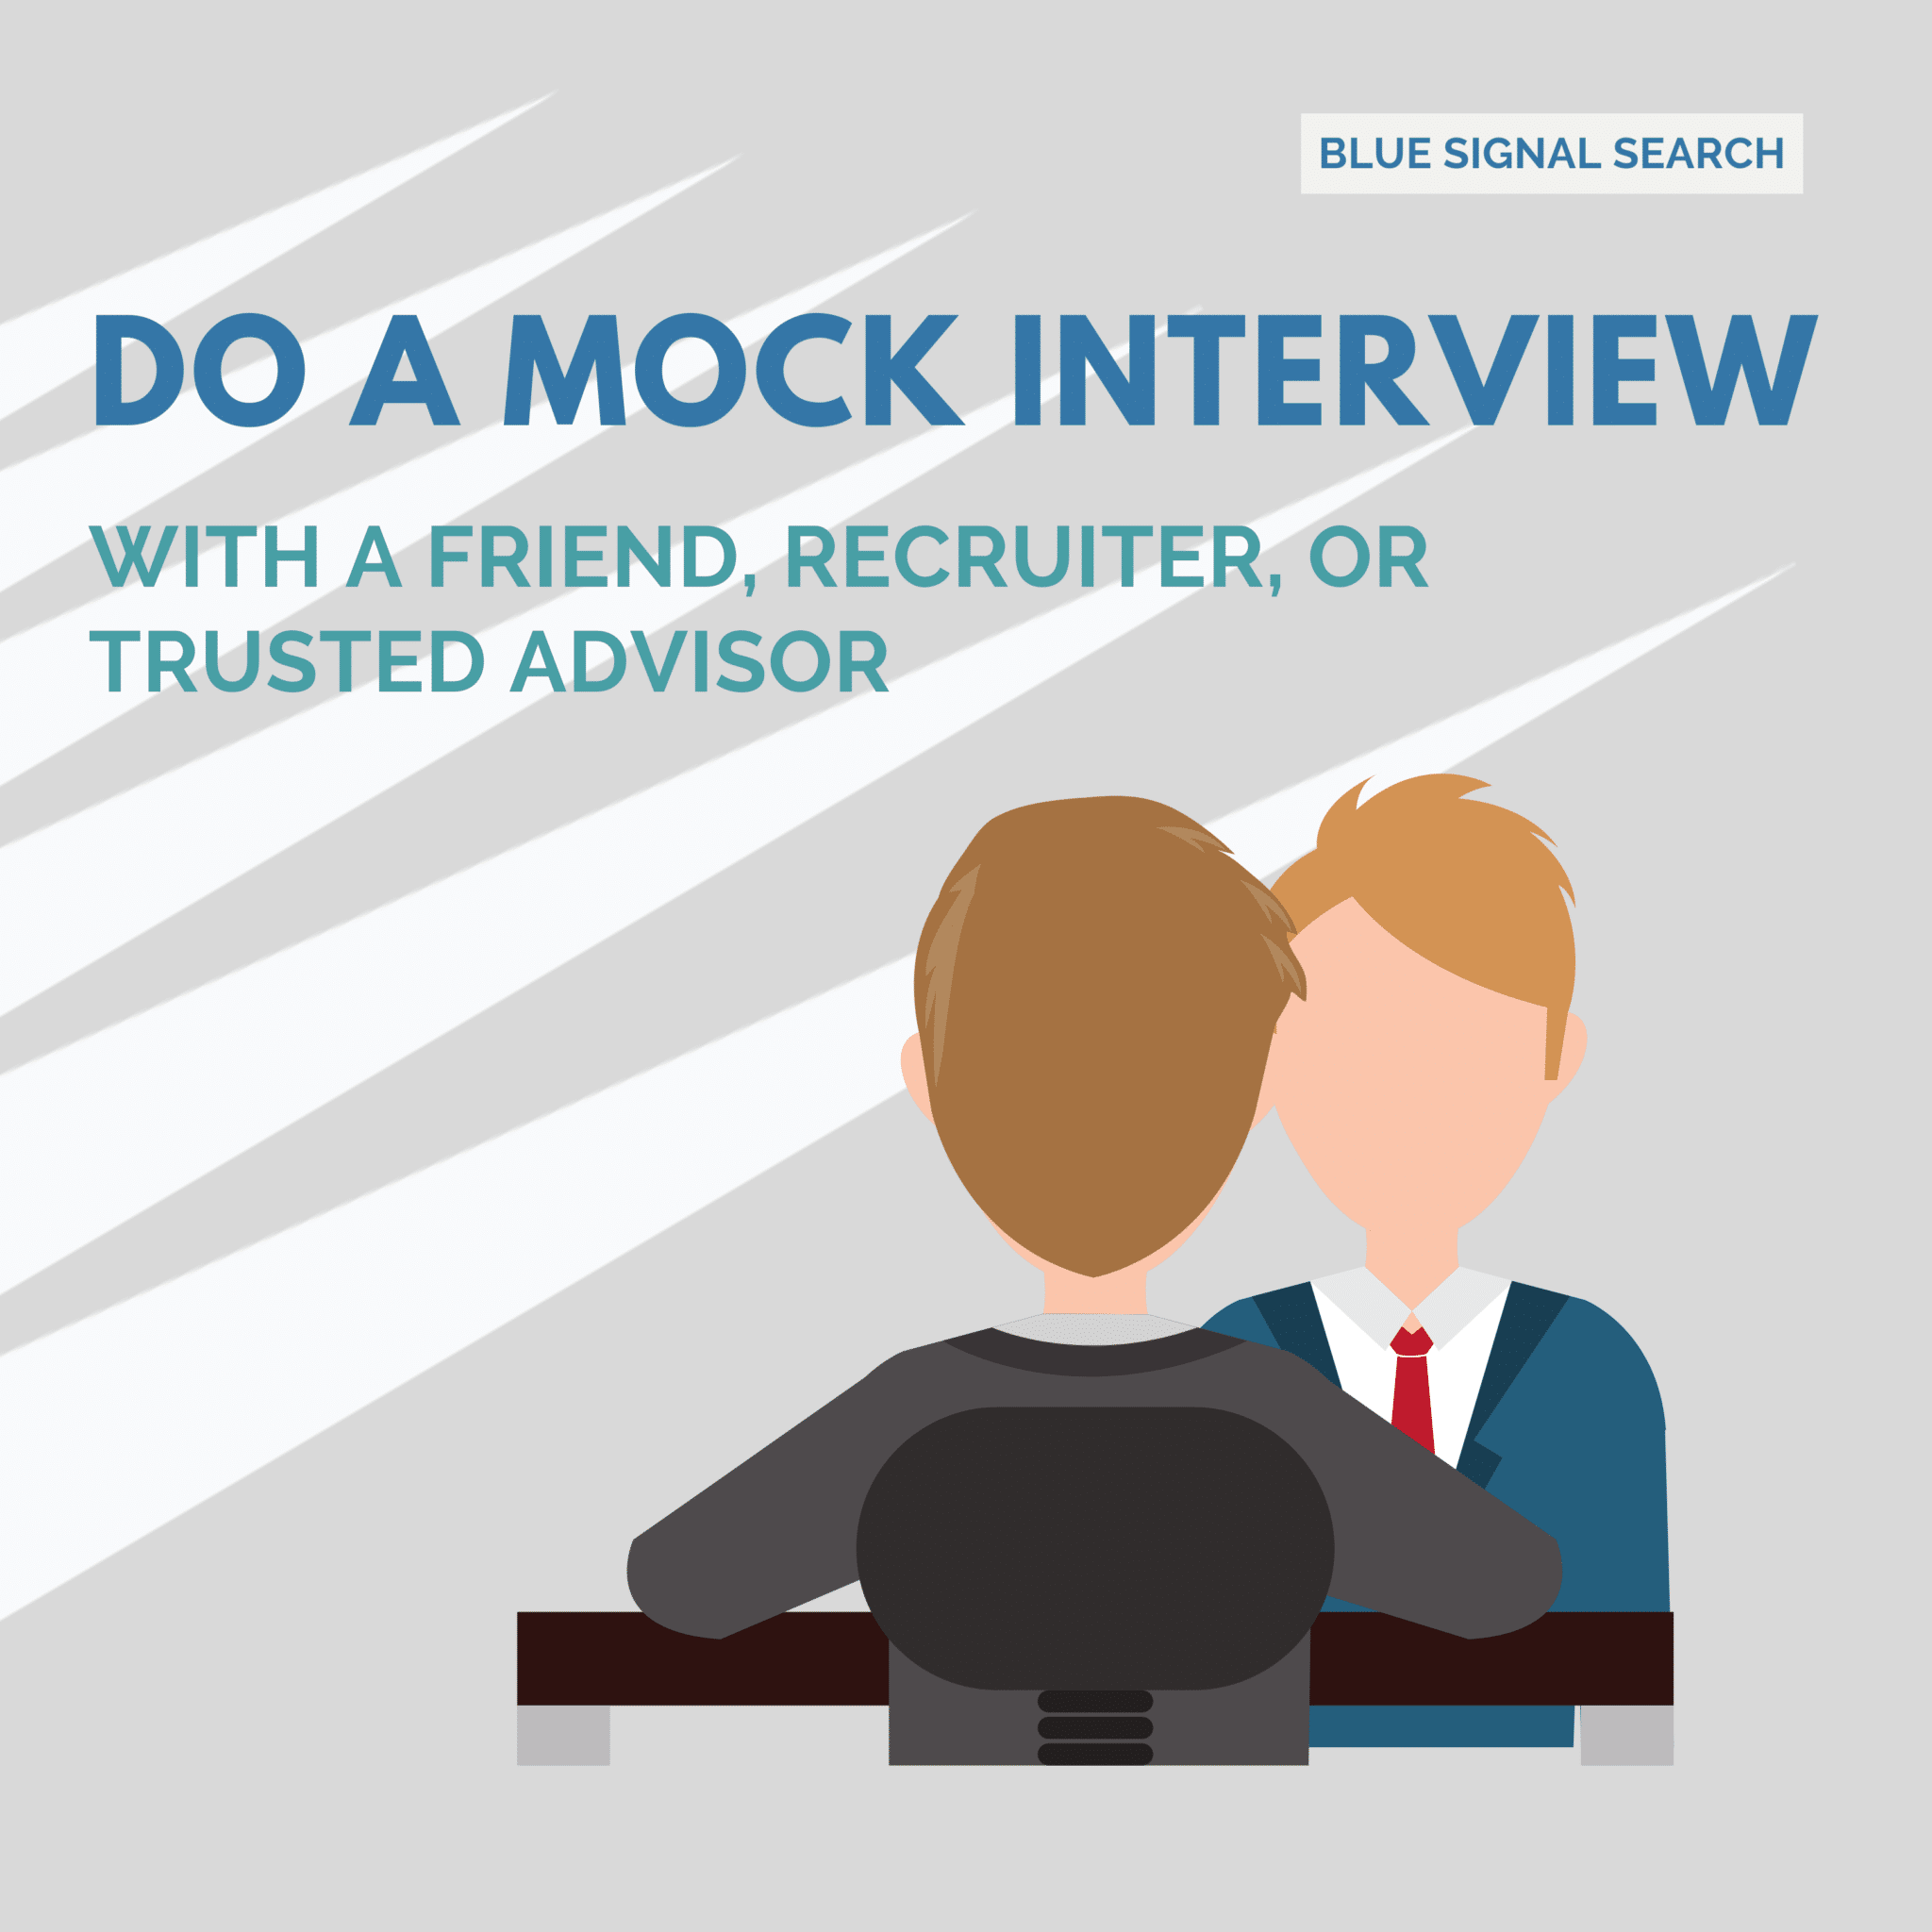 Do a Mock Interview